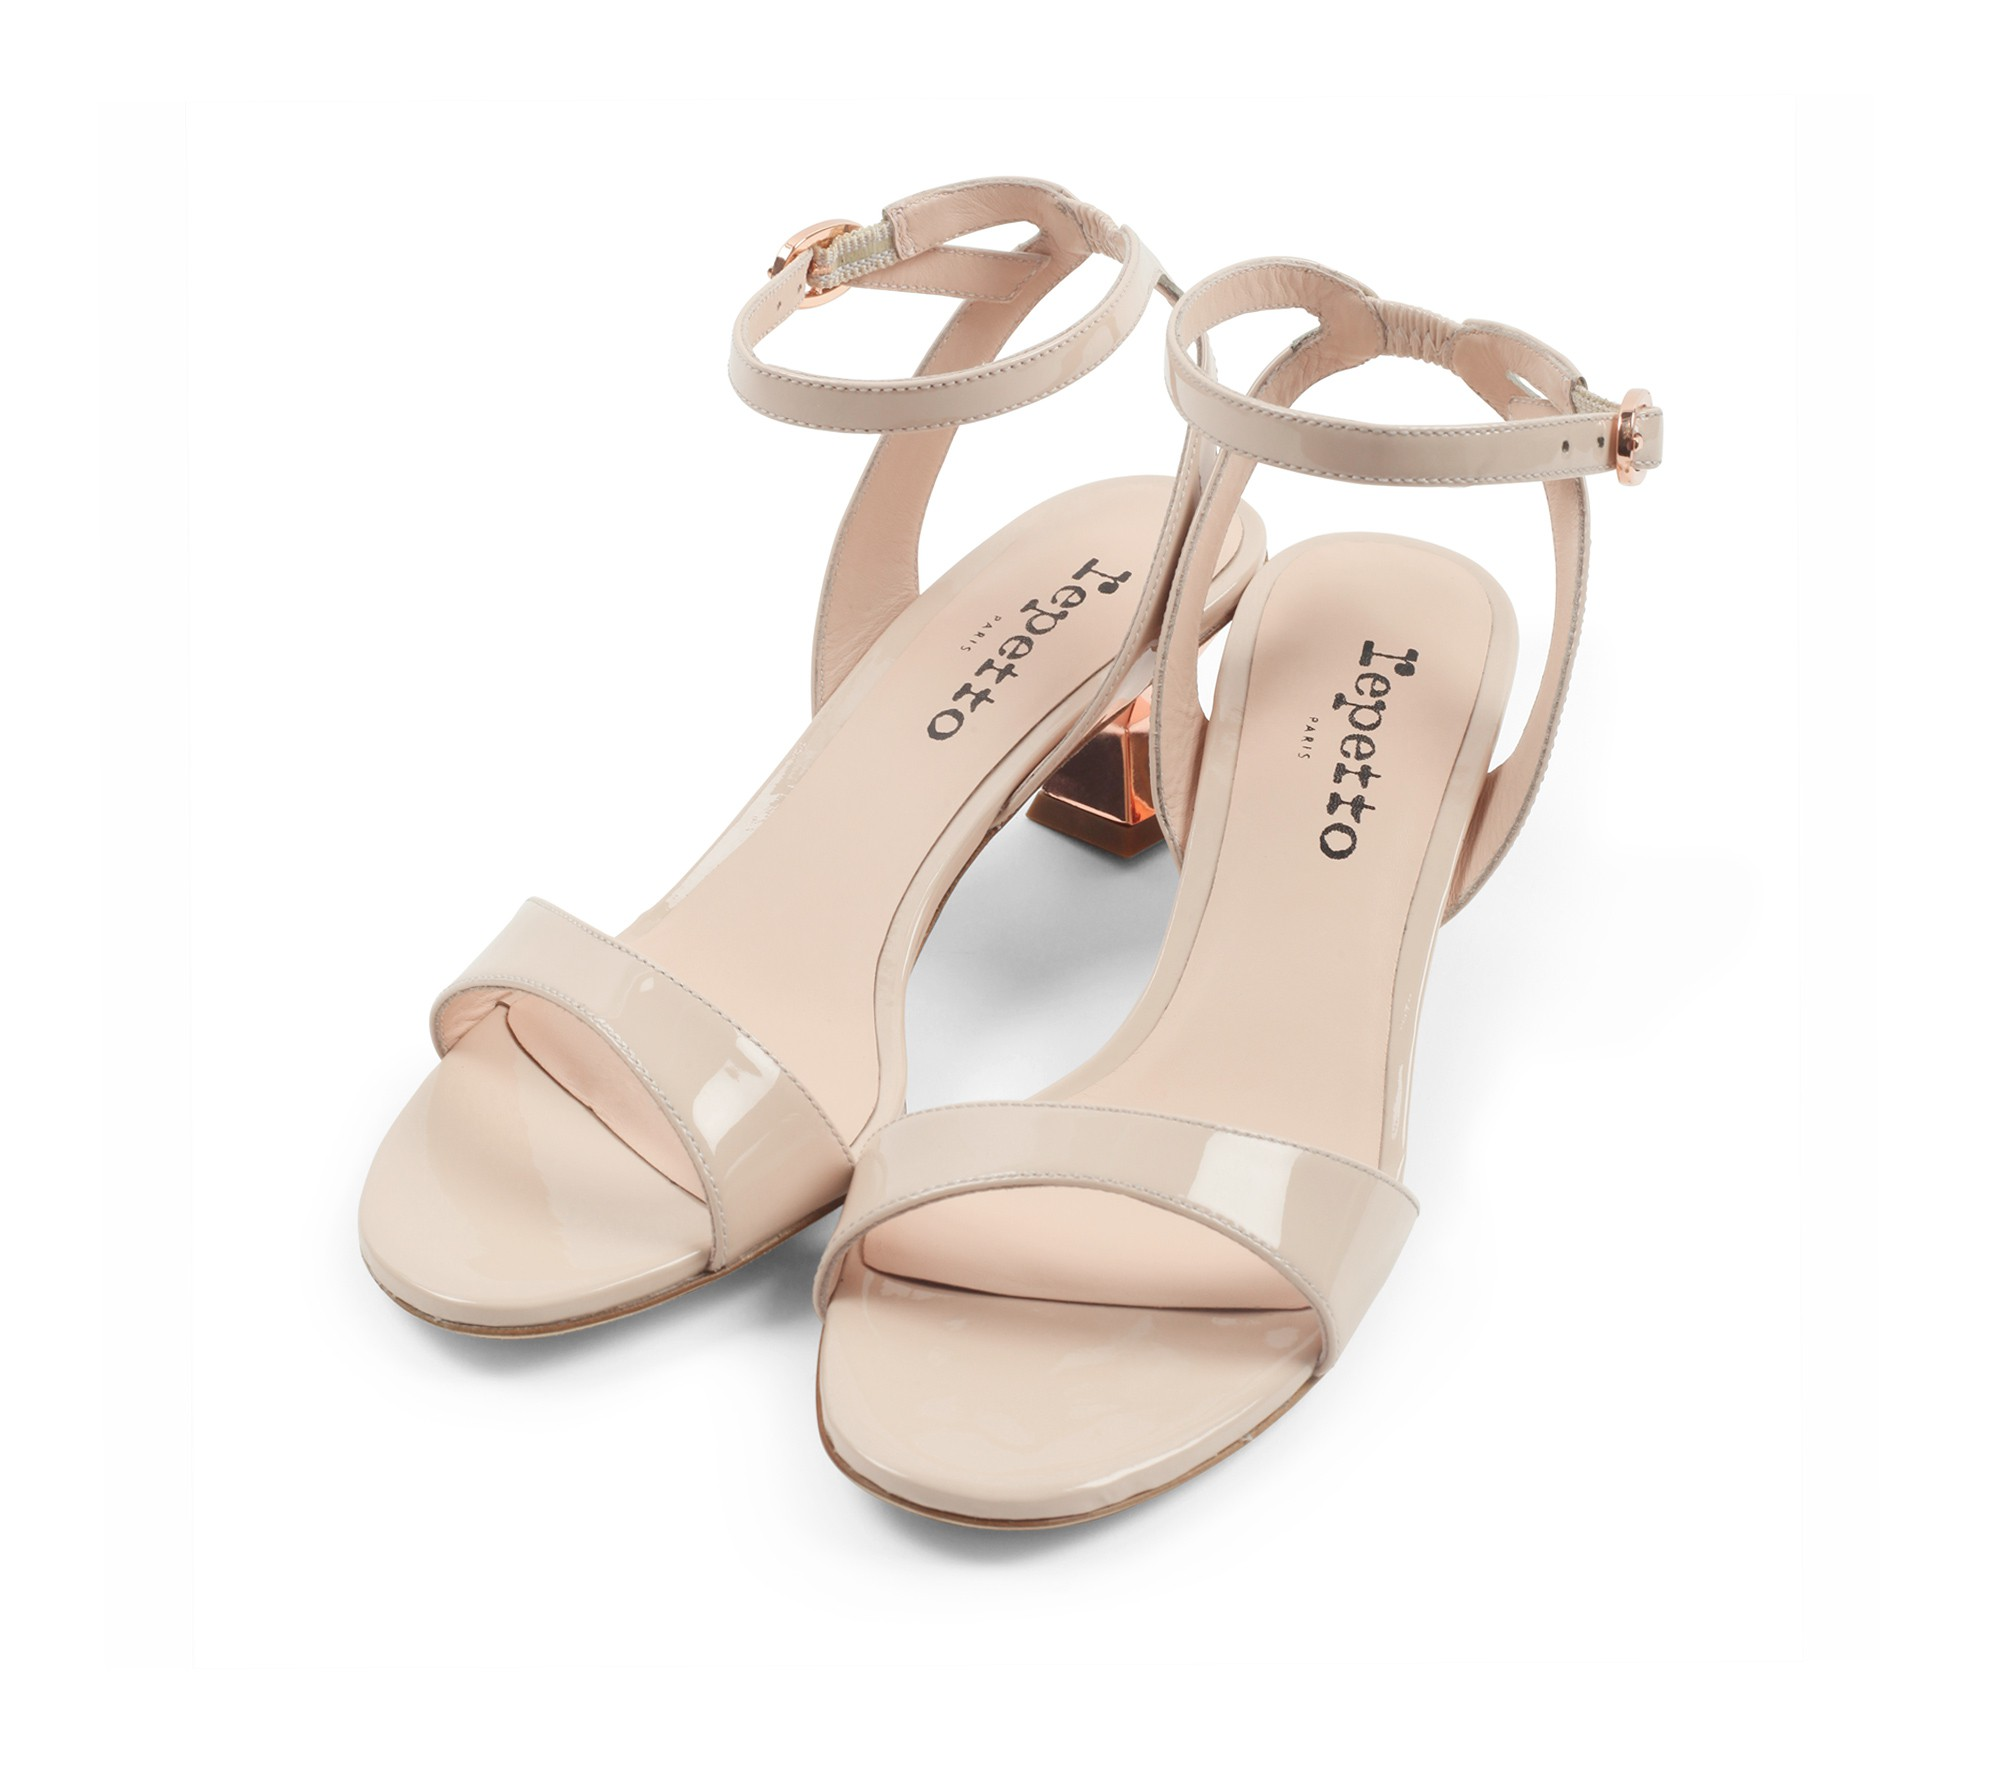 New Toulouse, Mocassins Femme, Taupe, 41 EUTen Points